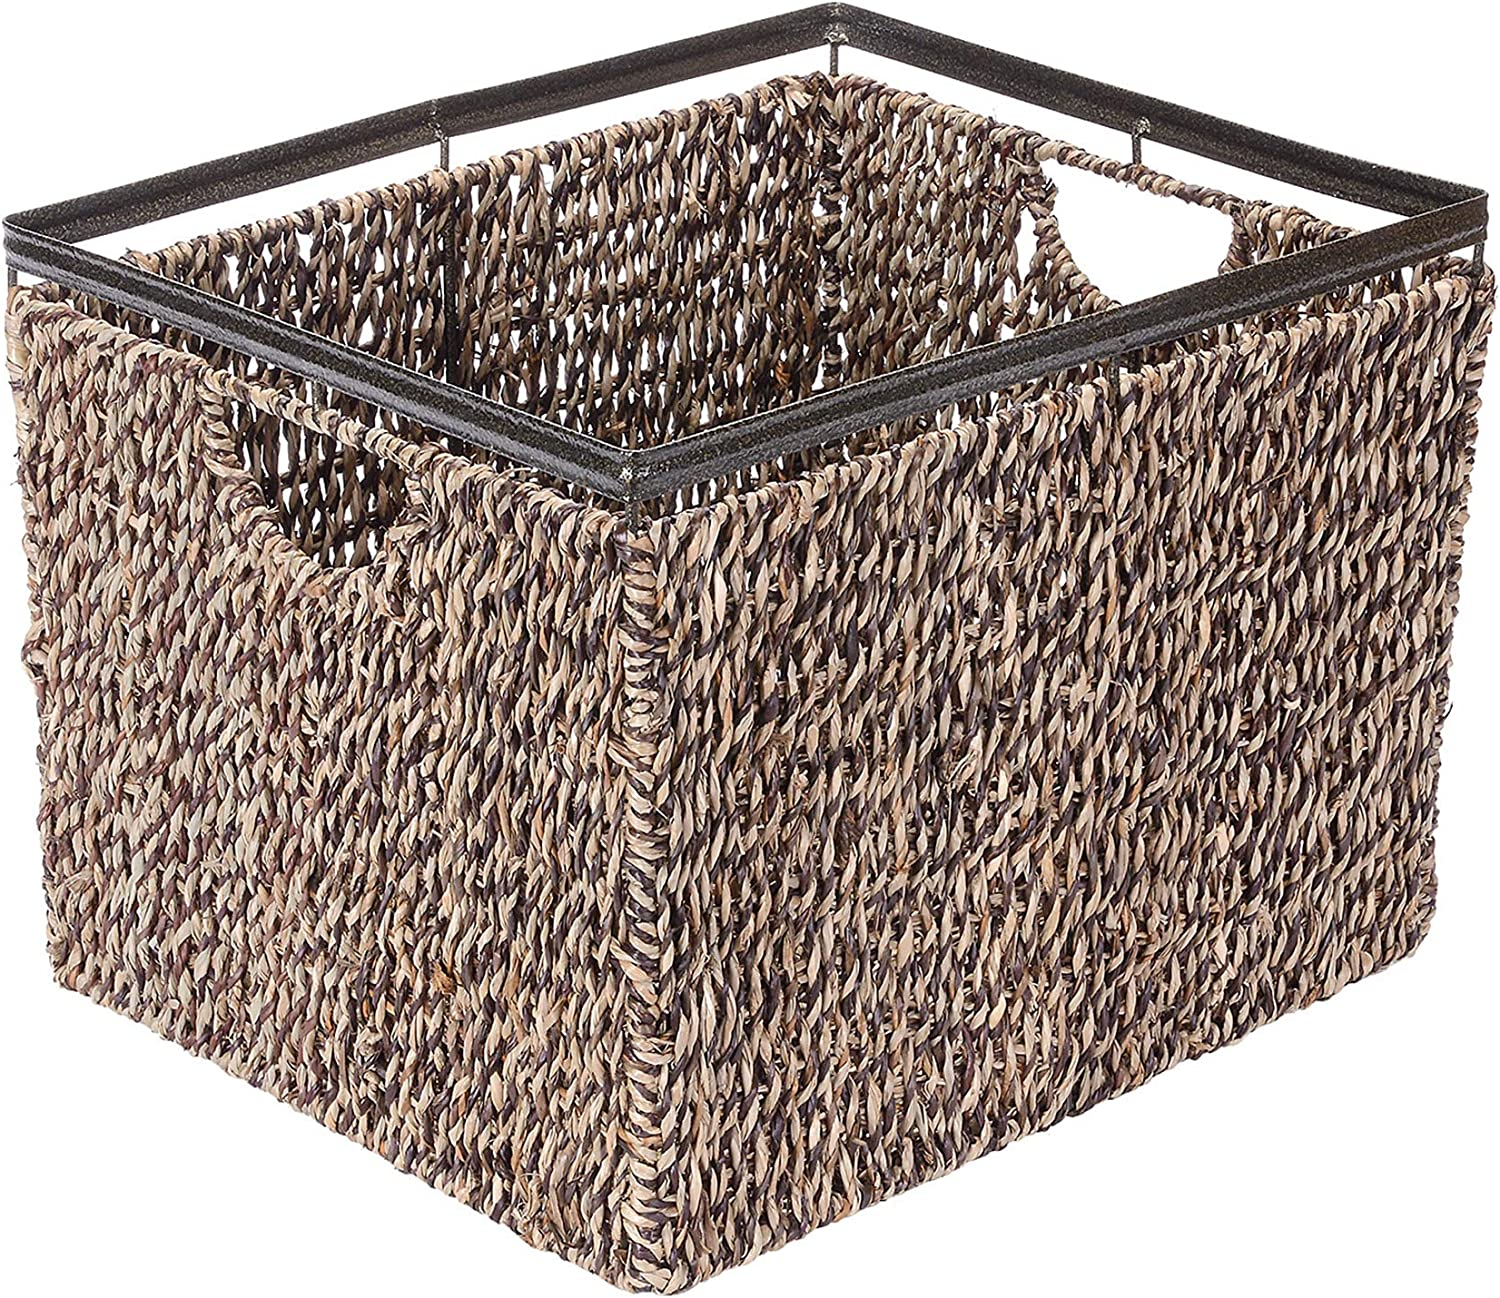 Villacera Rectangle Handmade Twisted Wicker Baskets Made of Water Hyacinth   Nesting Brown and Natural Seagrass Tubs   Set of 3